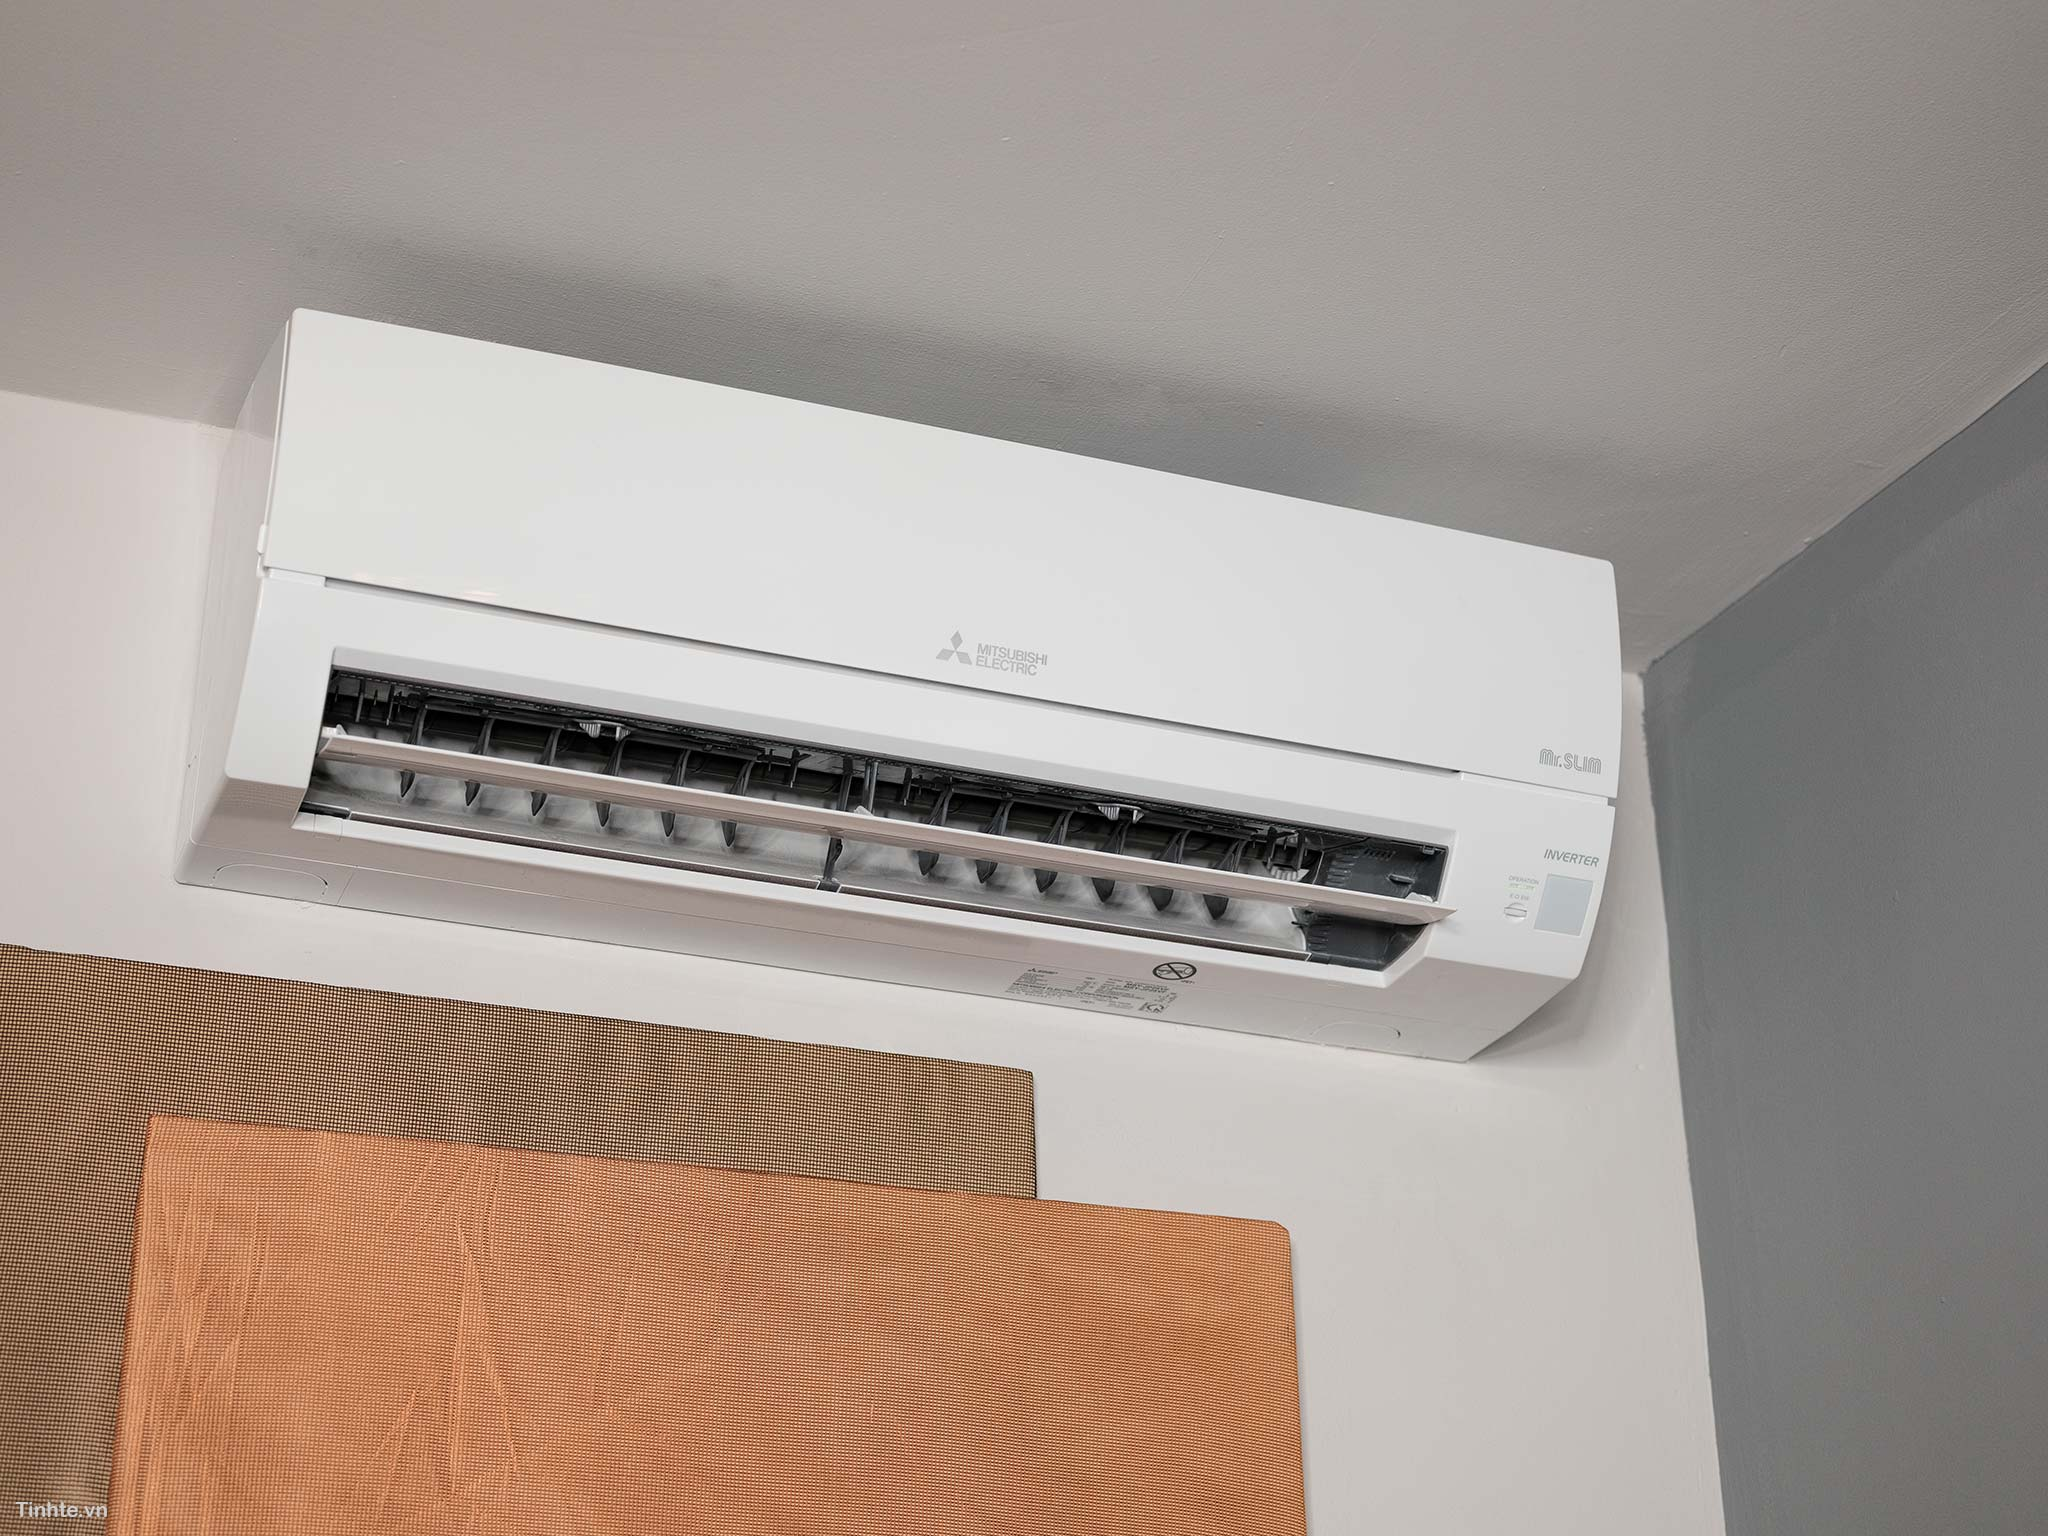 You ask me how easy it is to turn on the air conditioner before going home. Air conditioner I install long ...